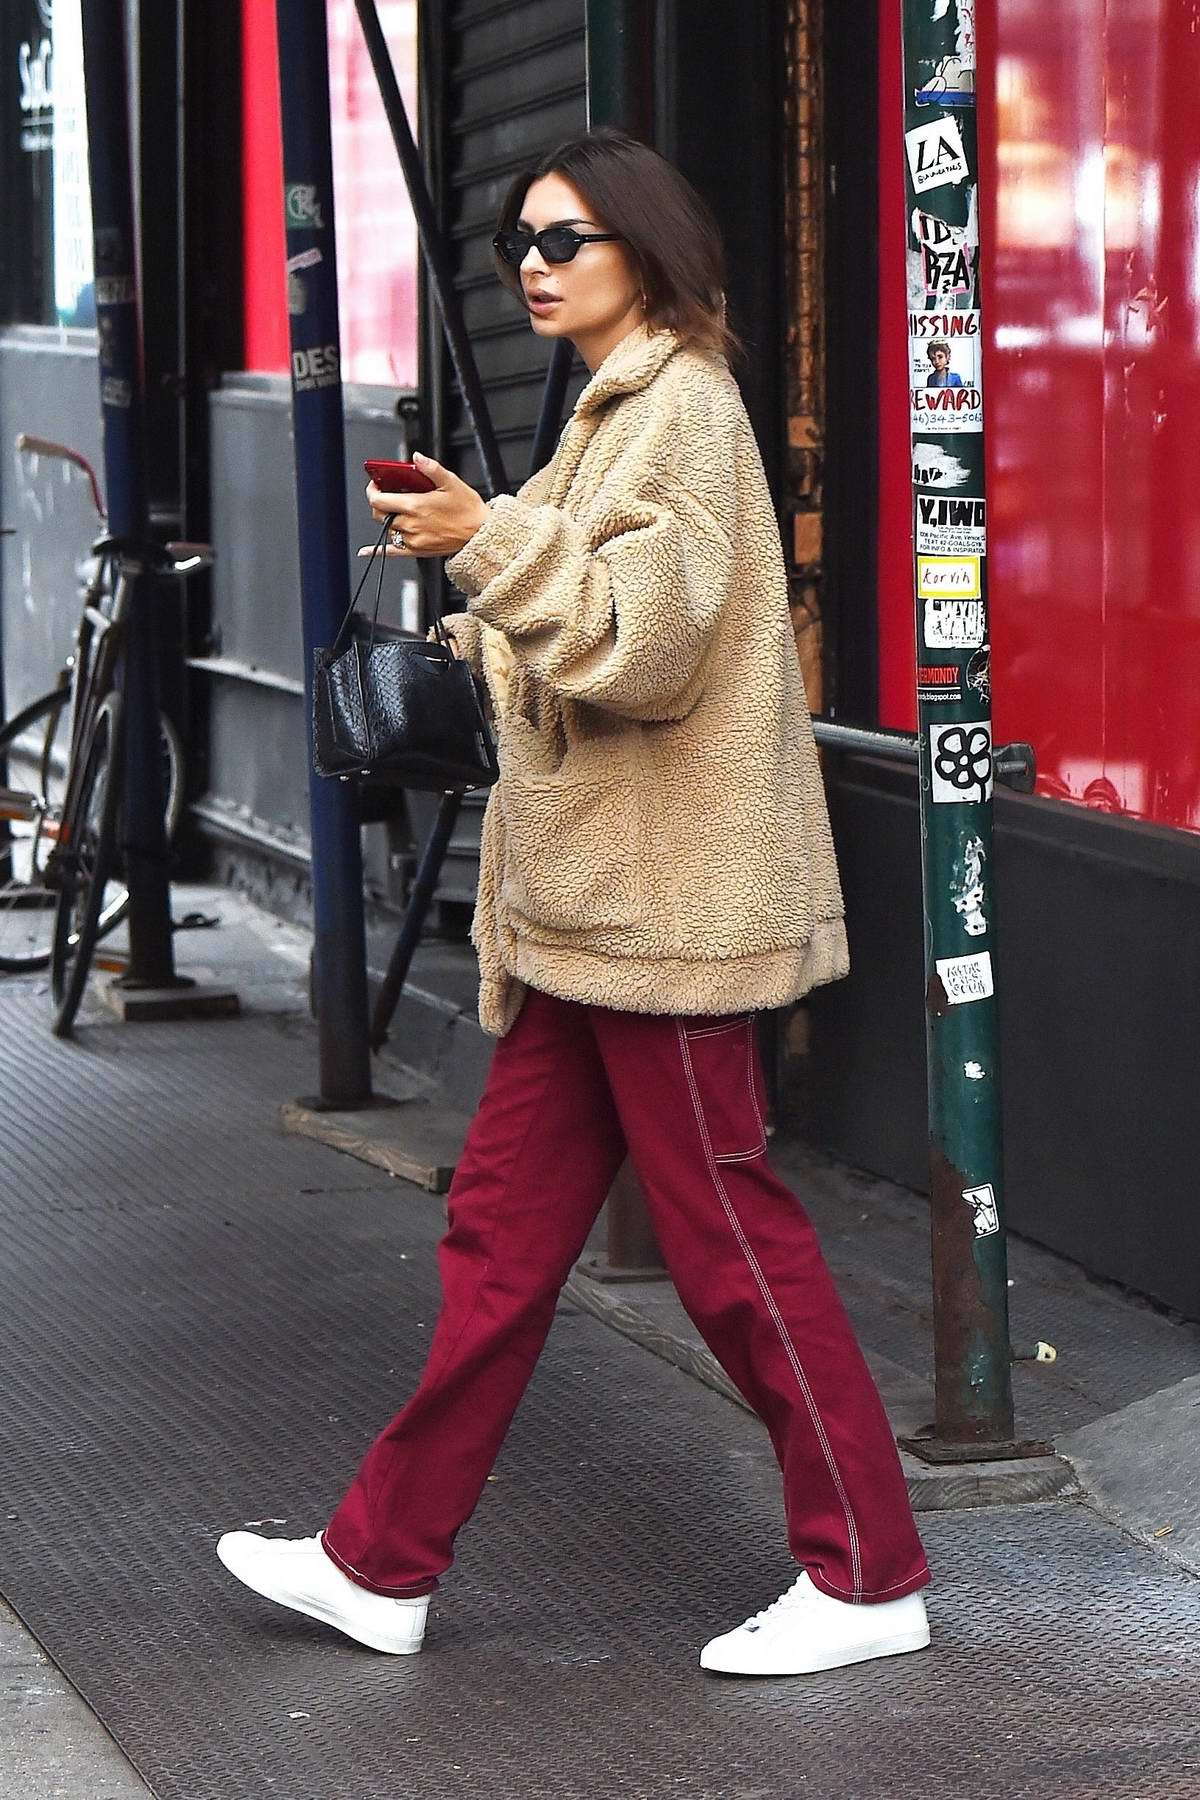 Emily Ratajkowski wears a beige teddy jacket and red trousers while out running errands in New York City